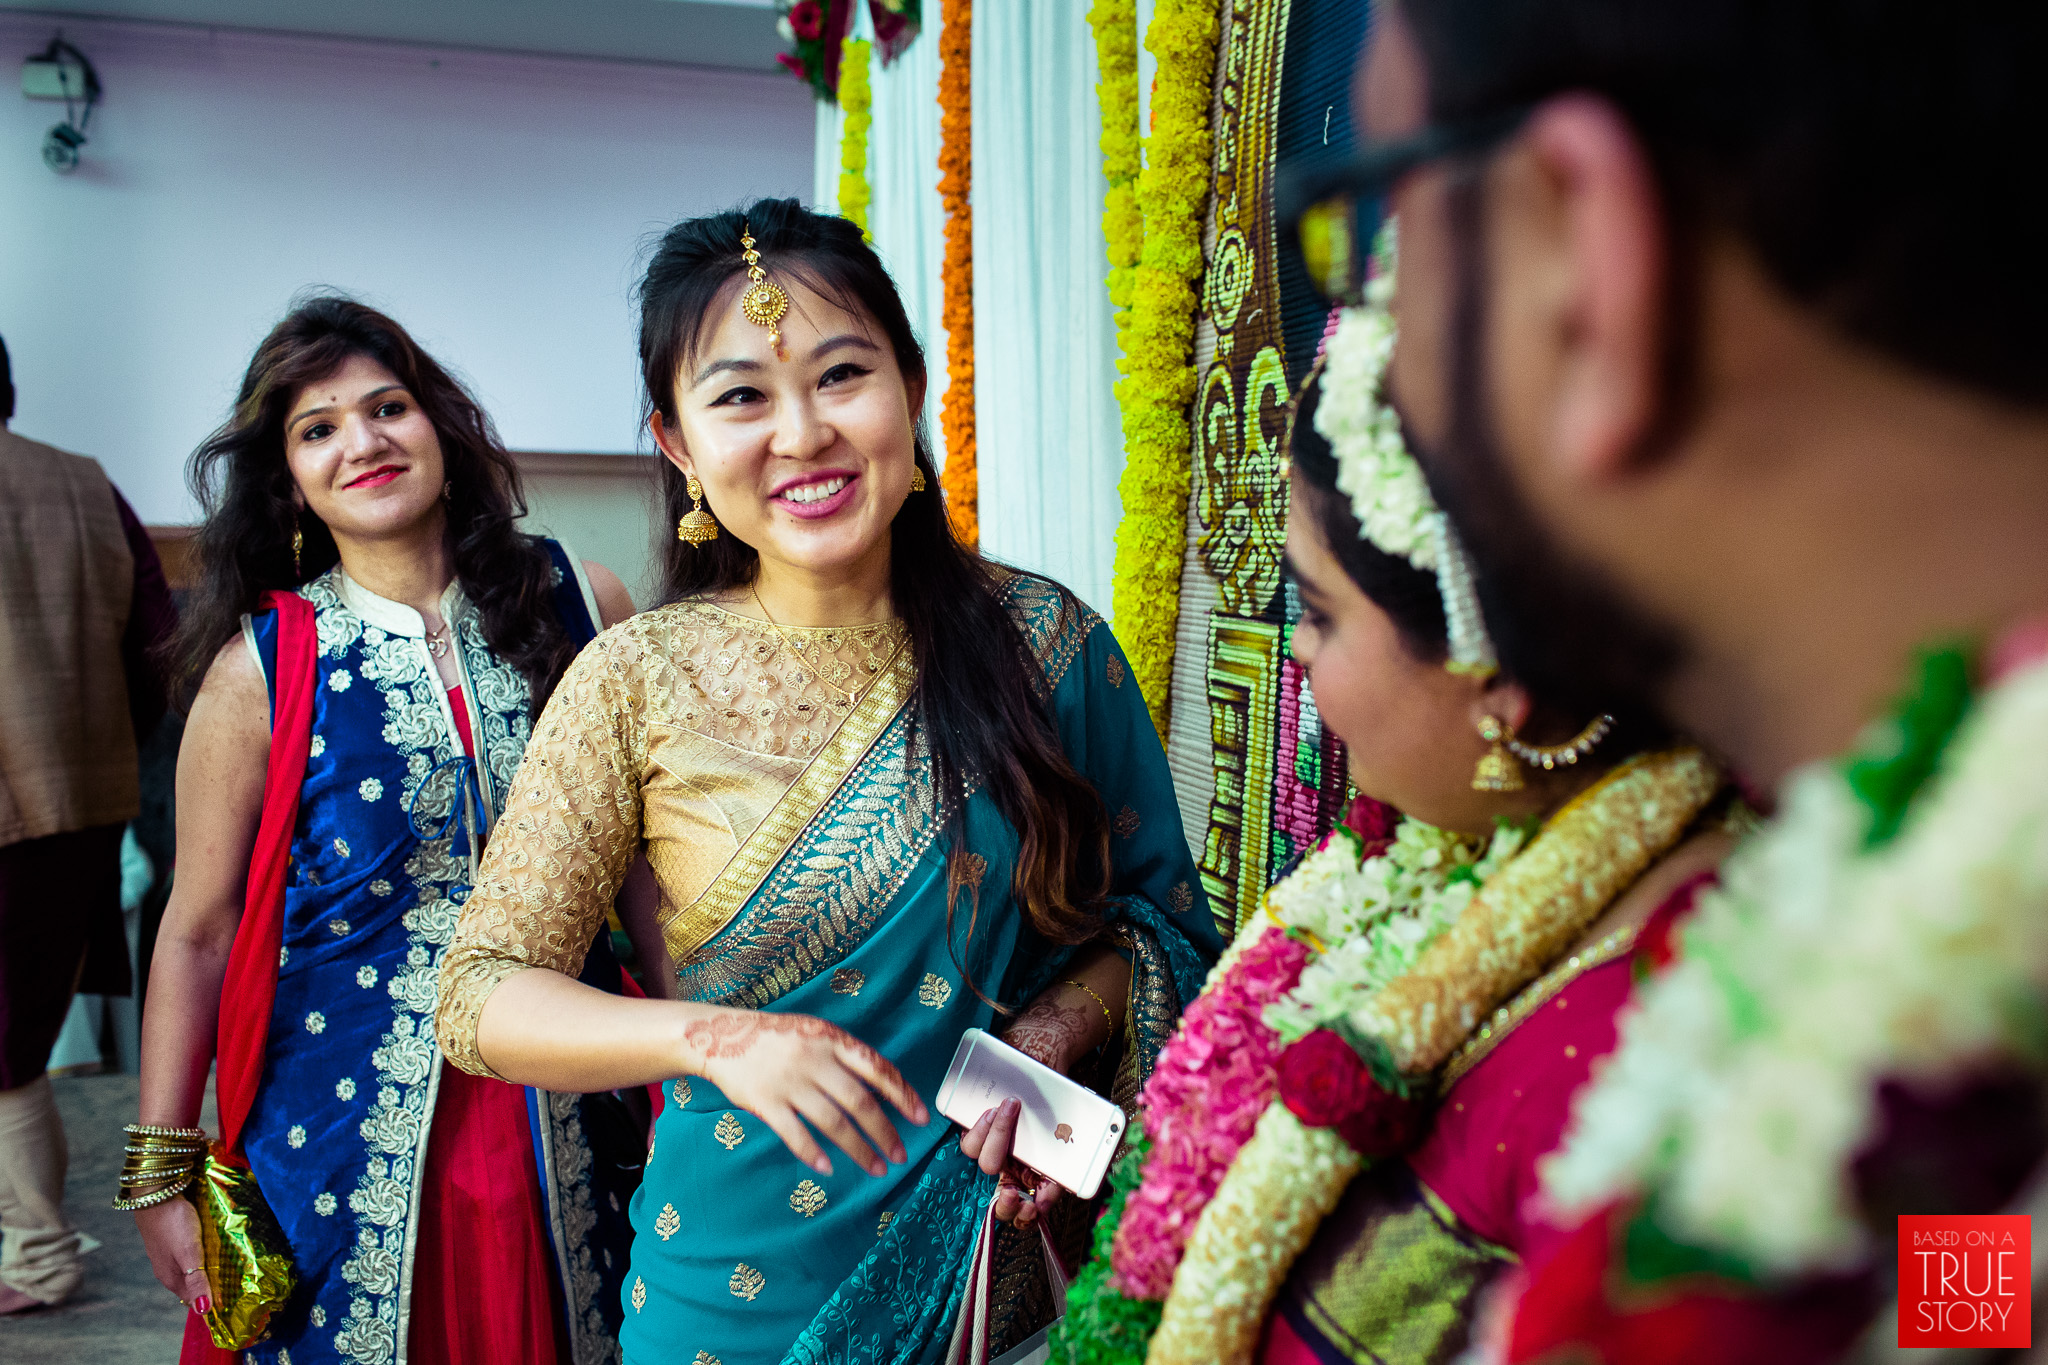 tambrahm-candid-wedding-photographer-bangalore-0058.jpg